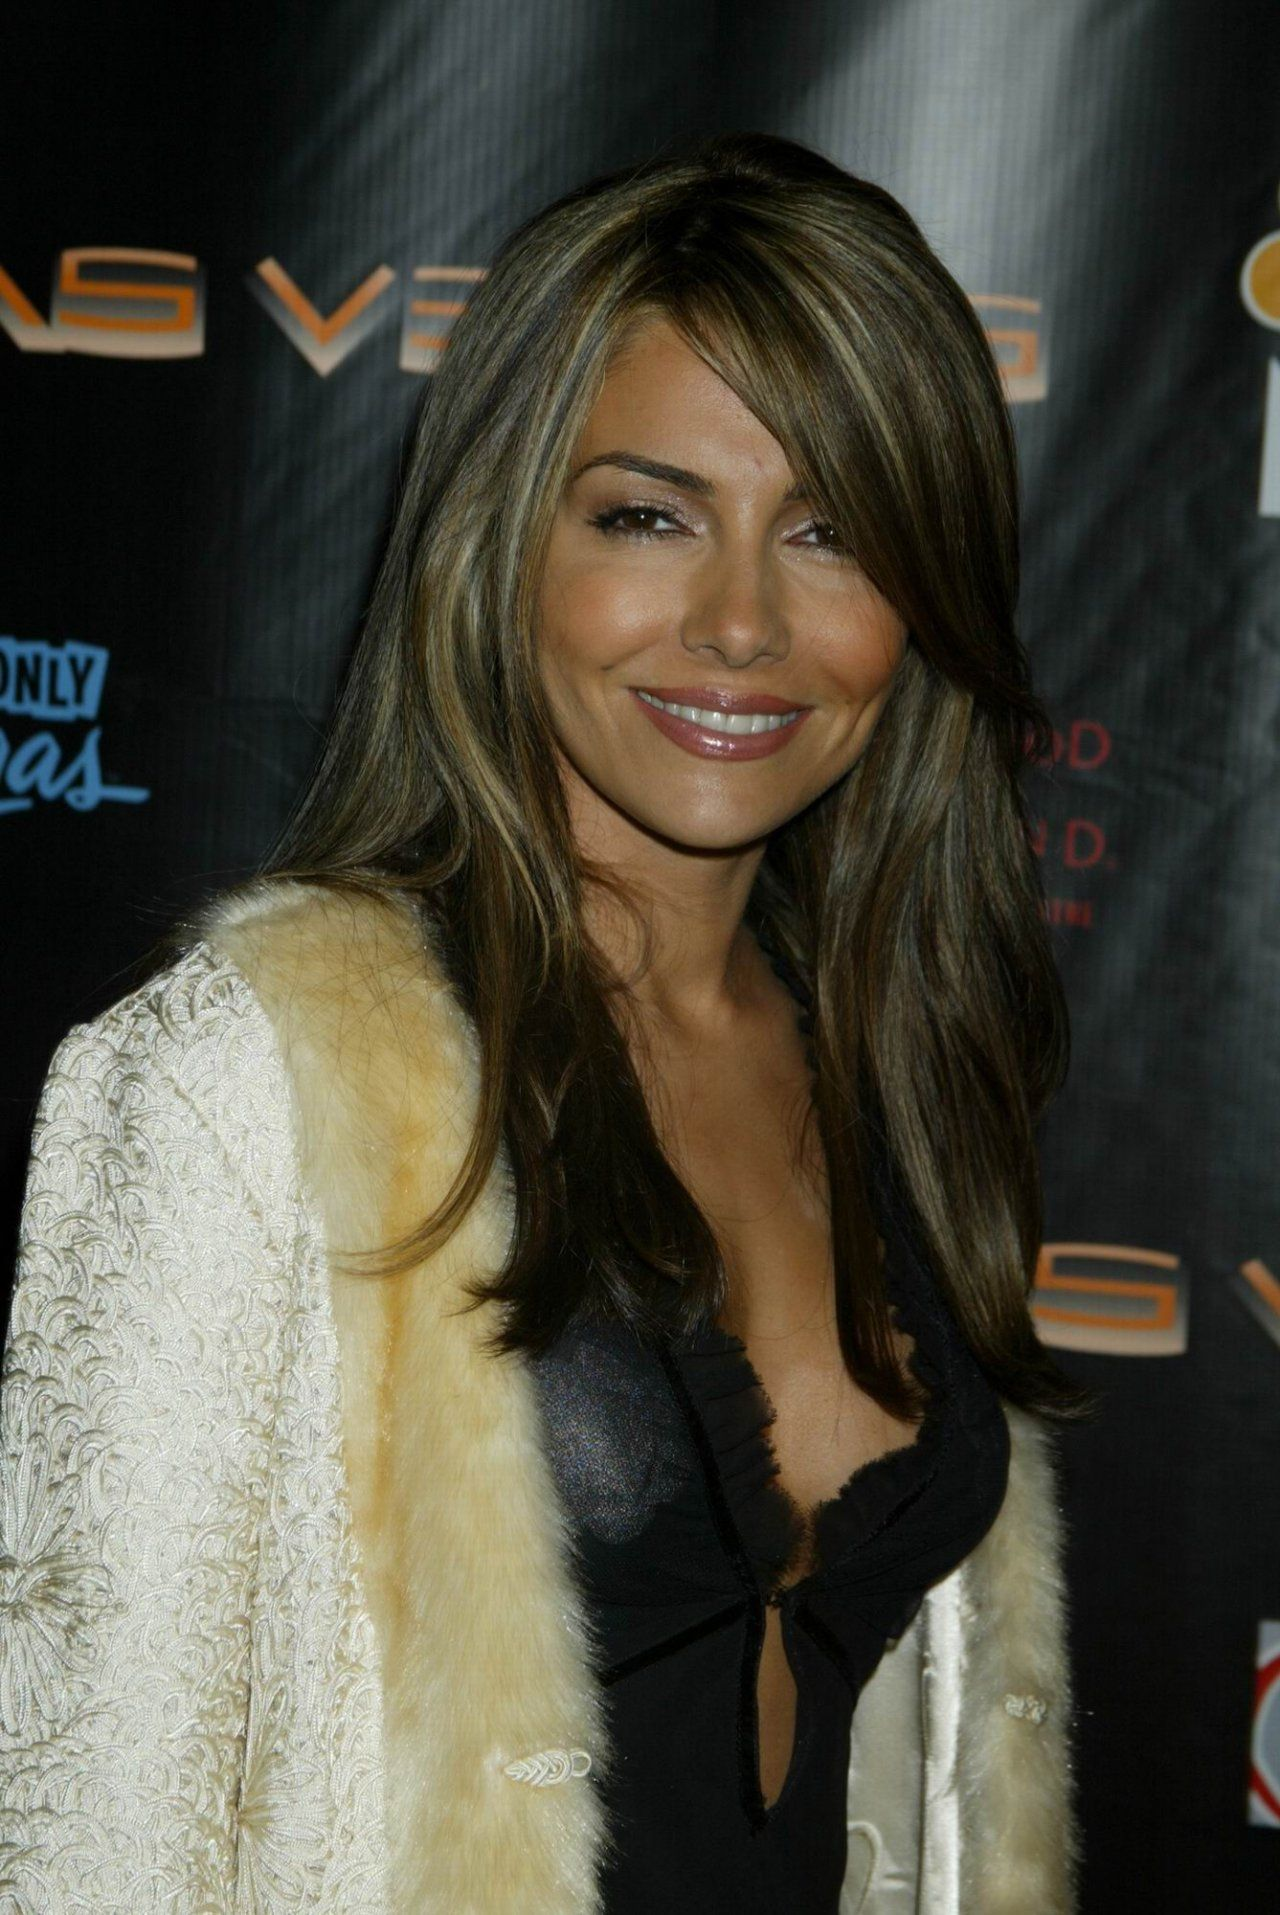 Cleavage Vanessa Marcil nude (68 photo), Sexy, Sideboobs, Selfie, butt 2020